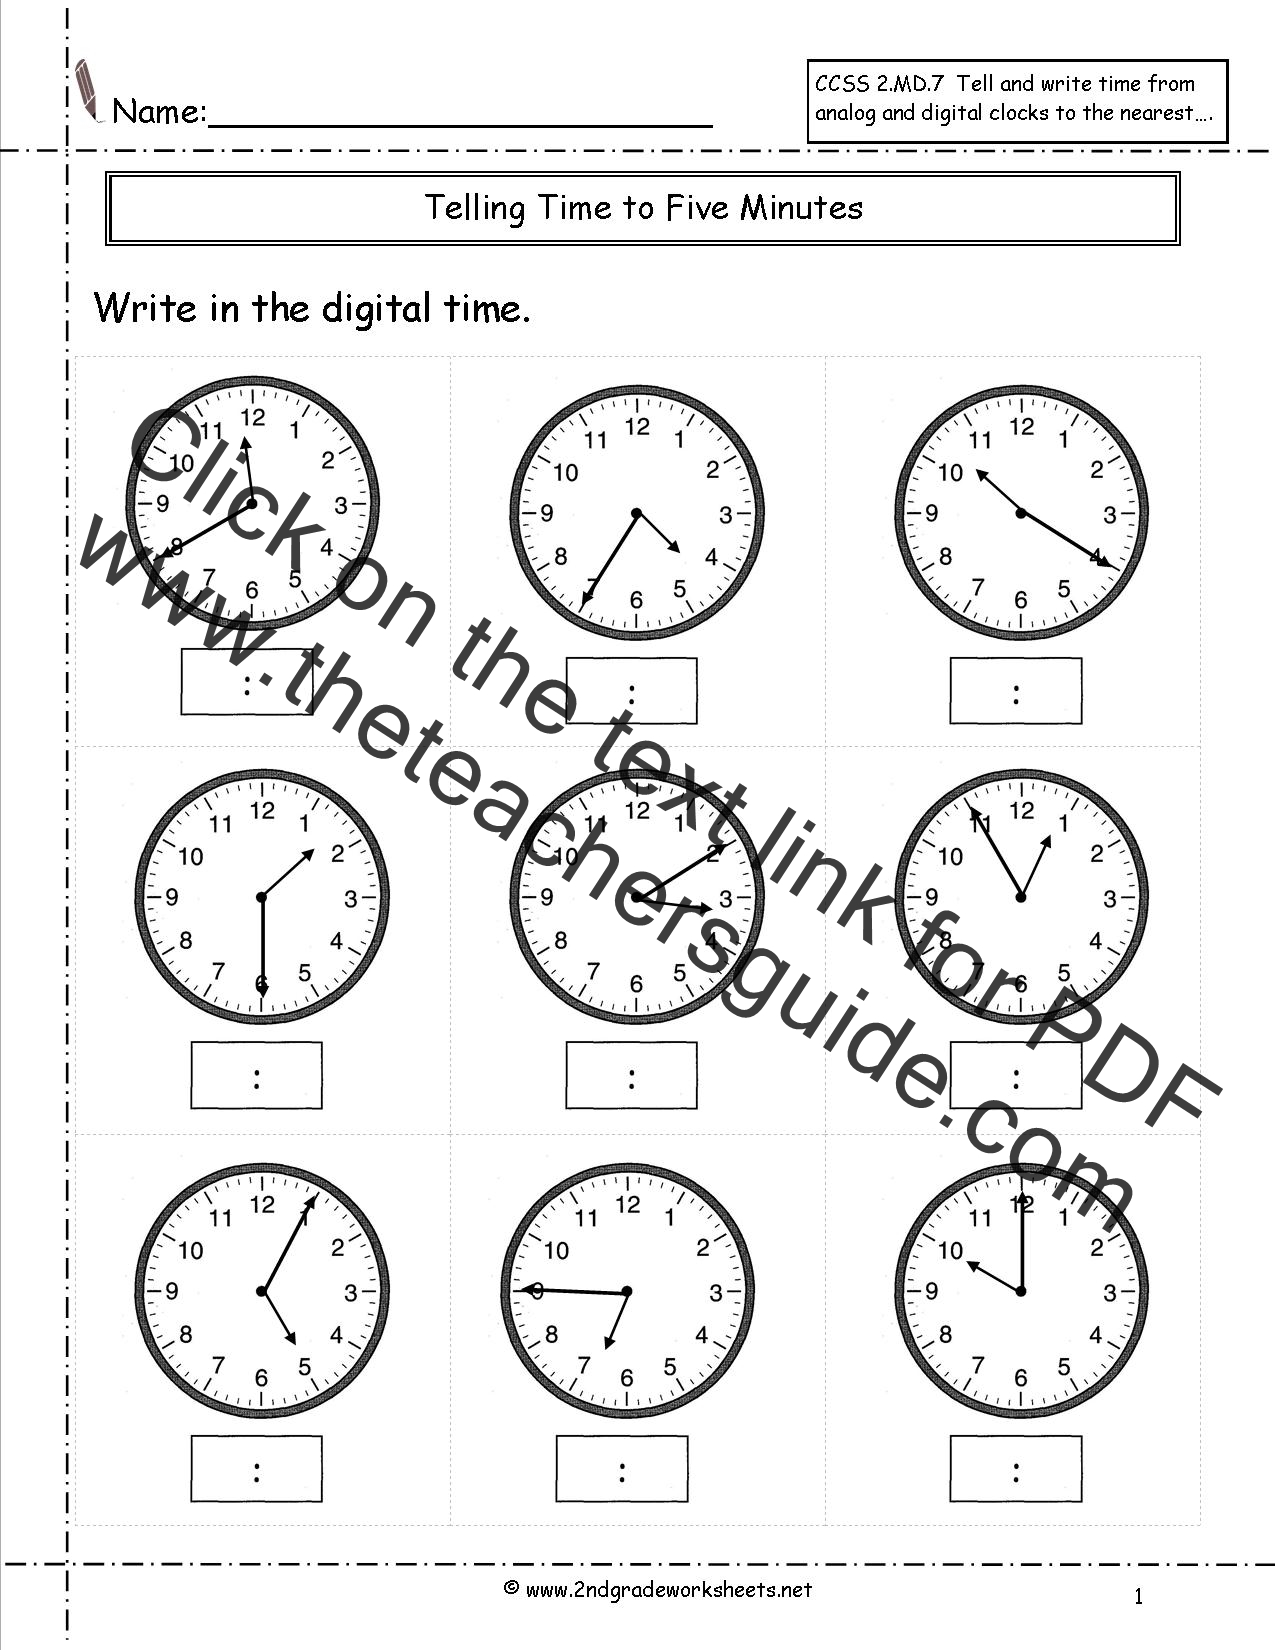 worksheet Time Worksheets For Grade 2 telling and writing time worksheets to nearest five minutes worksheet